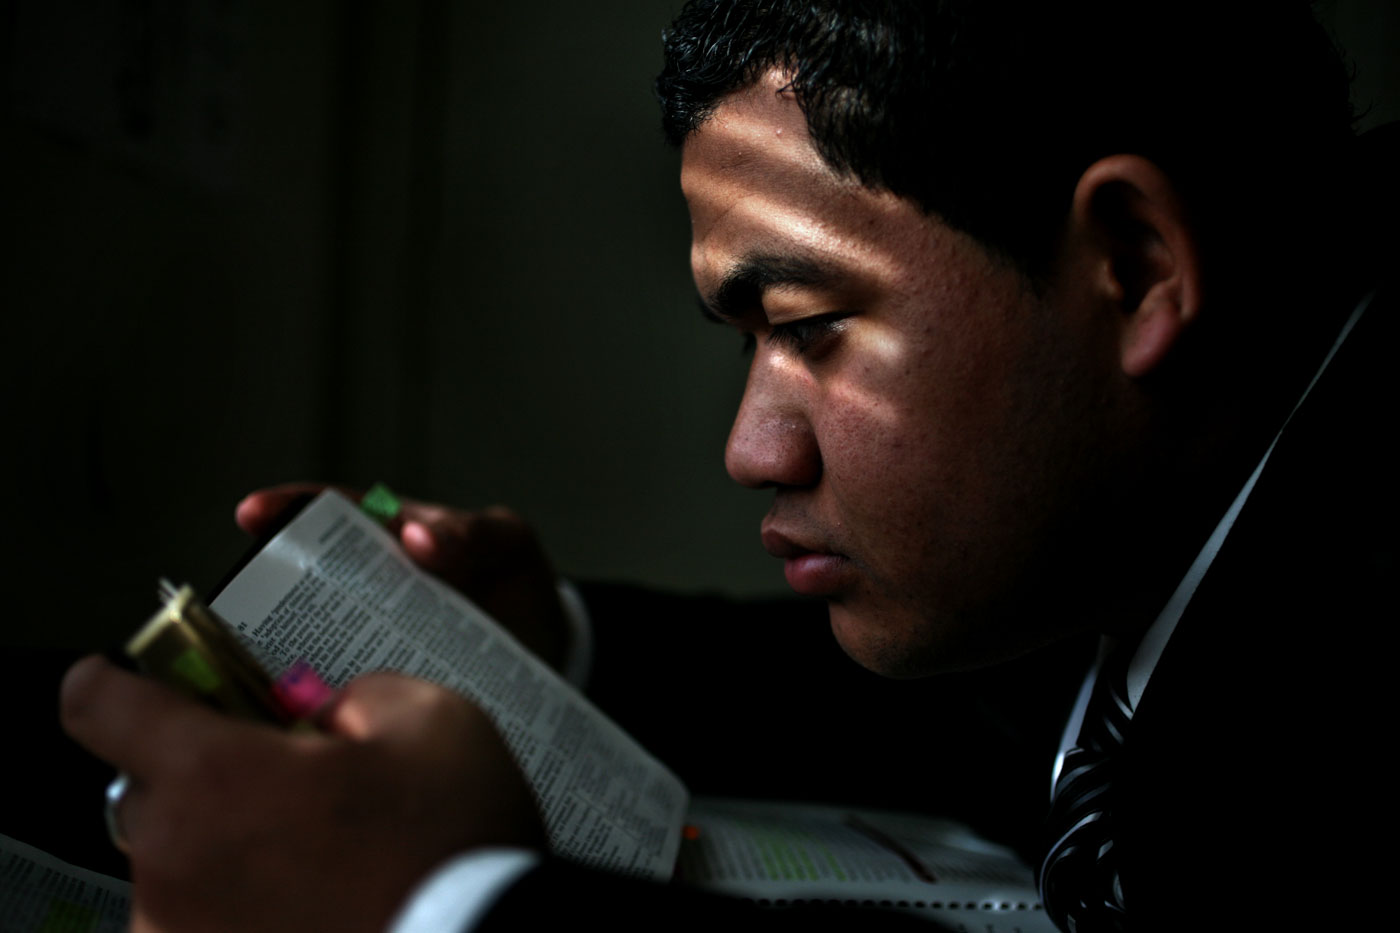 Pauliasi Wolfgramm reads the Bible in his Virginia Beach apartment as morning light sifts through the shades. He reads the bible each morning to start his day. Orginally from Tonga, he is learning to speak and read English. {quote}No matter what the language is, the message is the same,{quote} said Wolfgramm of the Bible.